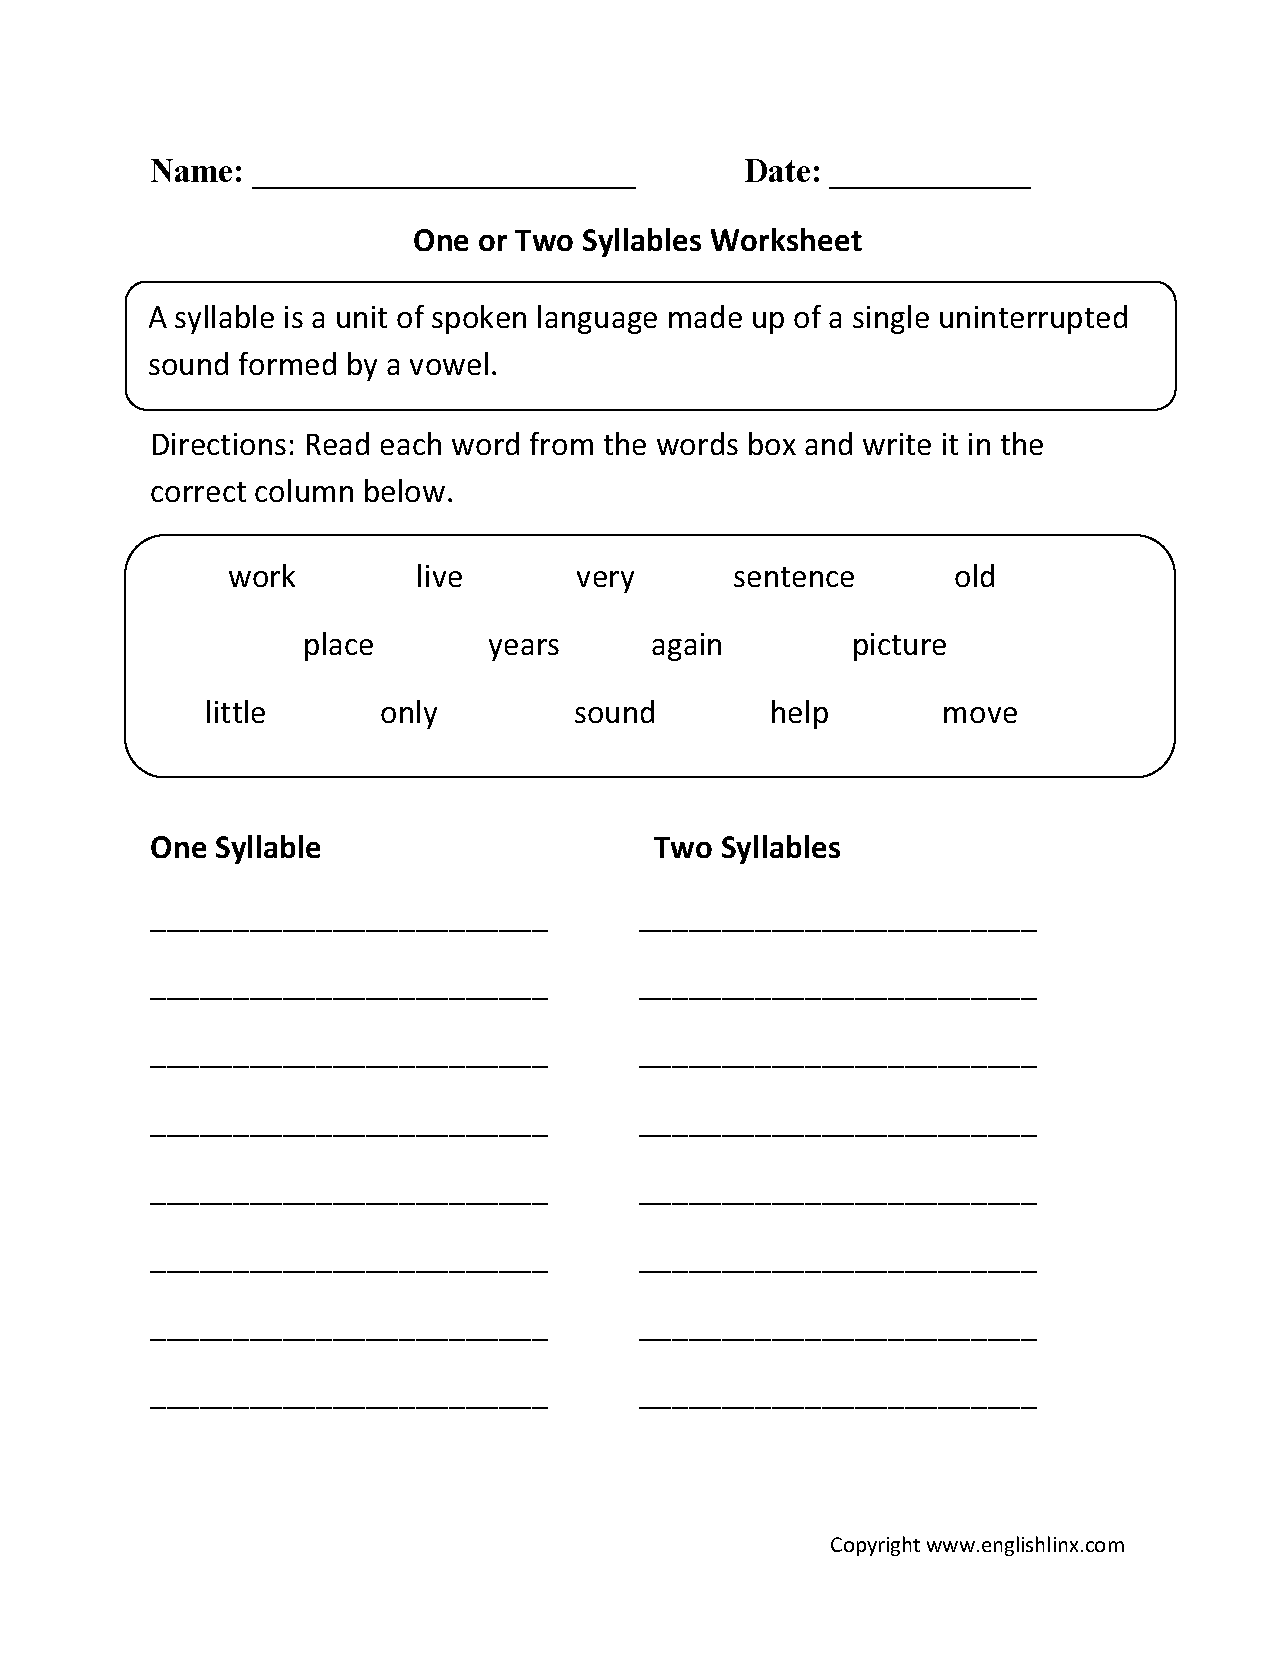 Aldiablosus  Pleasing Englishlinxcom  Syllables Worksheets With Likable Syllables Worksheets With Beauteous Bodmas Rule Worksheets Also Practice Letter Writing Worksheets In Addition Mixed Fractions Worksheets With Answers And Root Word Worksheets For Rd Grade As Well As Skip Counting Worksheets For Grade  Additionally English Worksheets For College Students From Englishlinxcom With Aldiablosus  Likable Englishlinxcom  Syllables Worksheets With Beauteous Syllables Worksheets And Pleasing Bodmas Rule Worksheets Also Practice Letter Writing Worksheets In Addition Mixed Fractions Worksheets With Answers From Englishlinxcom